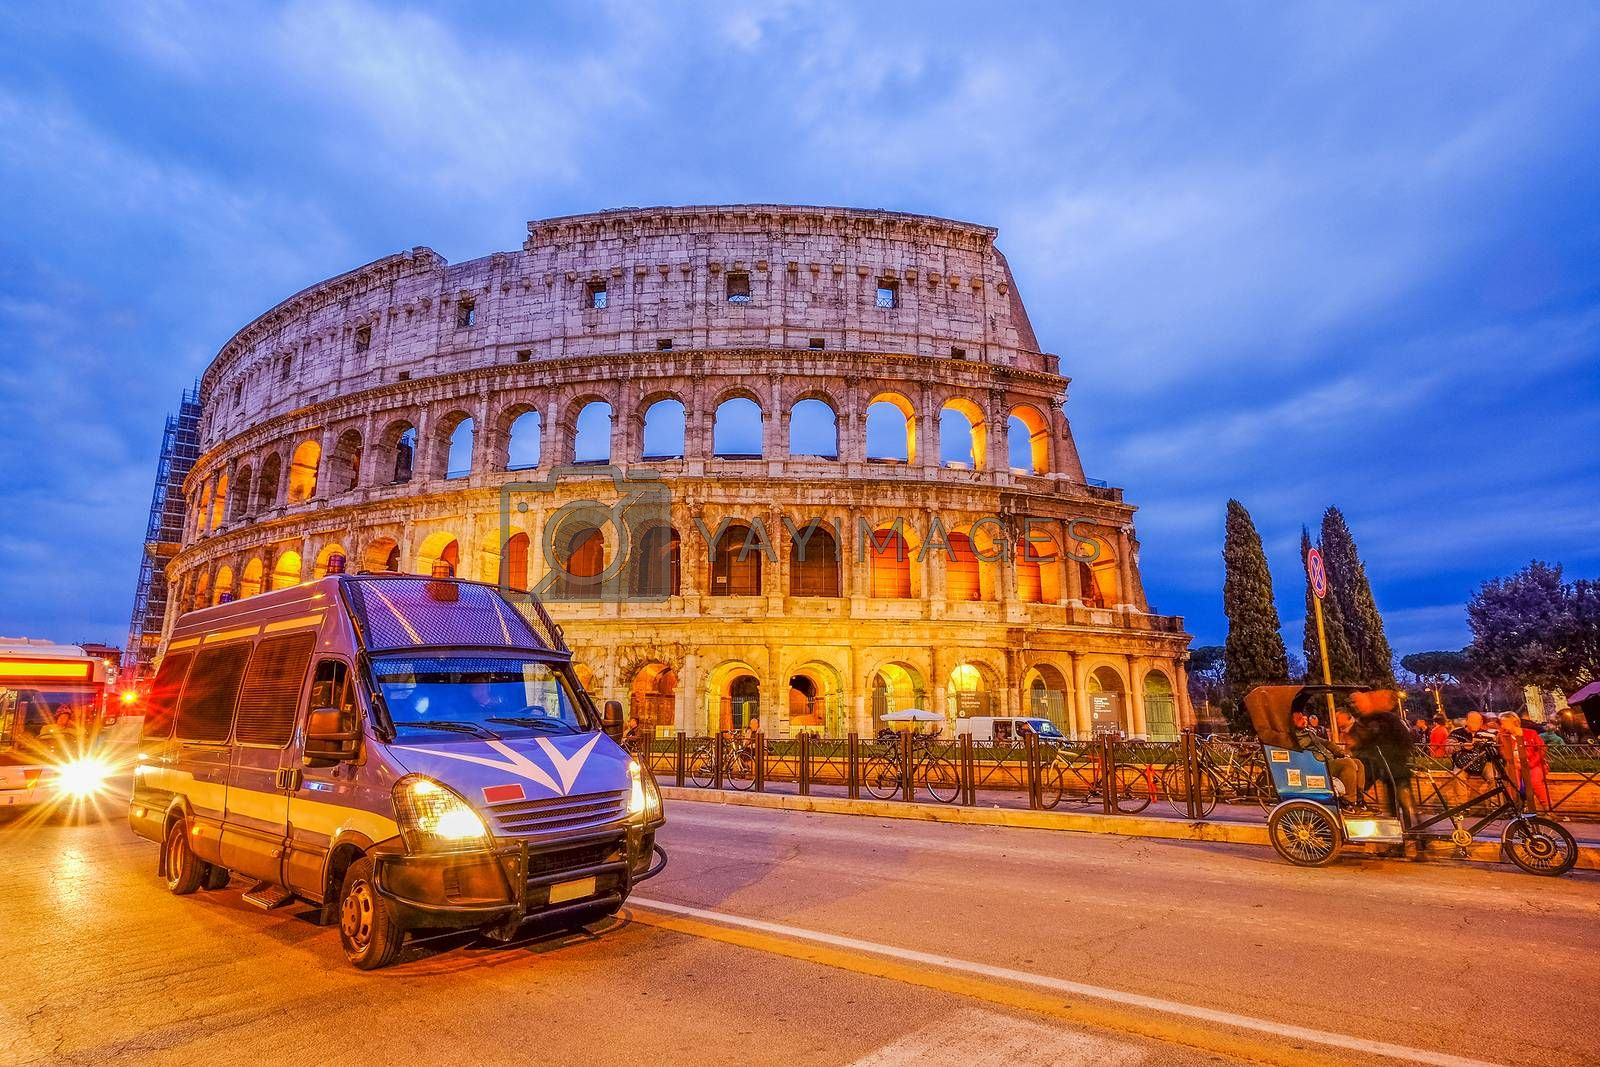 Traffic Jam in Colosseum, Rome, Italy. Twilight view of Colosseo in Rome